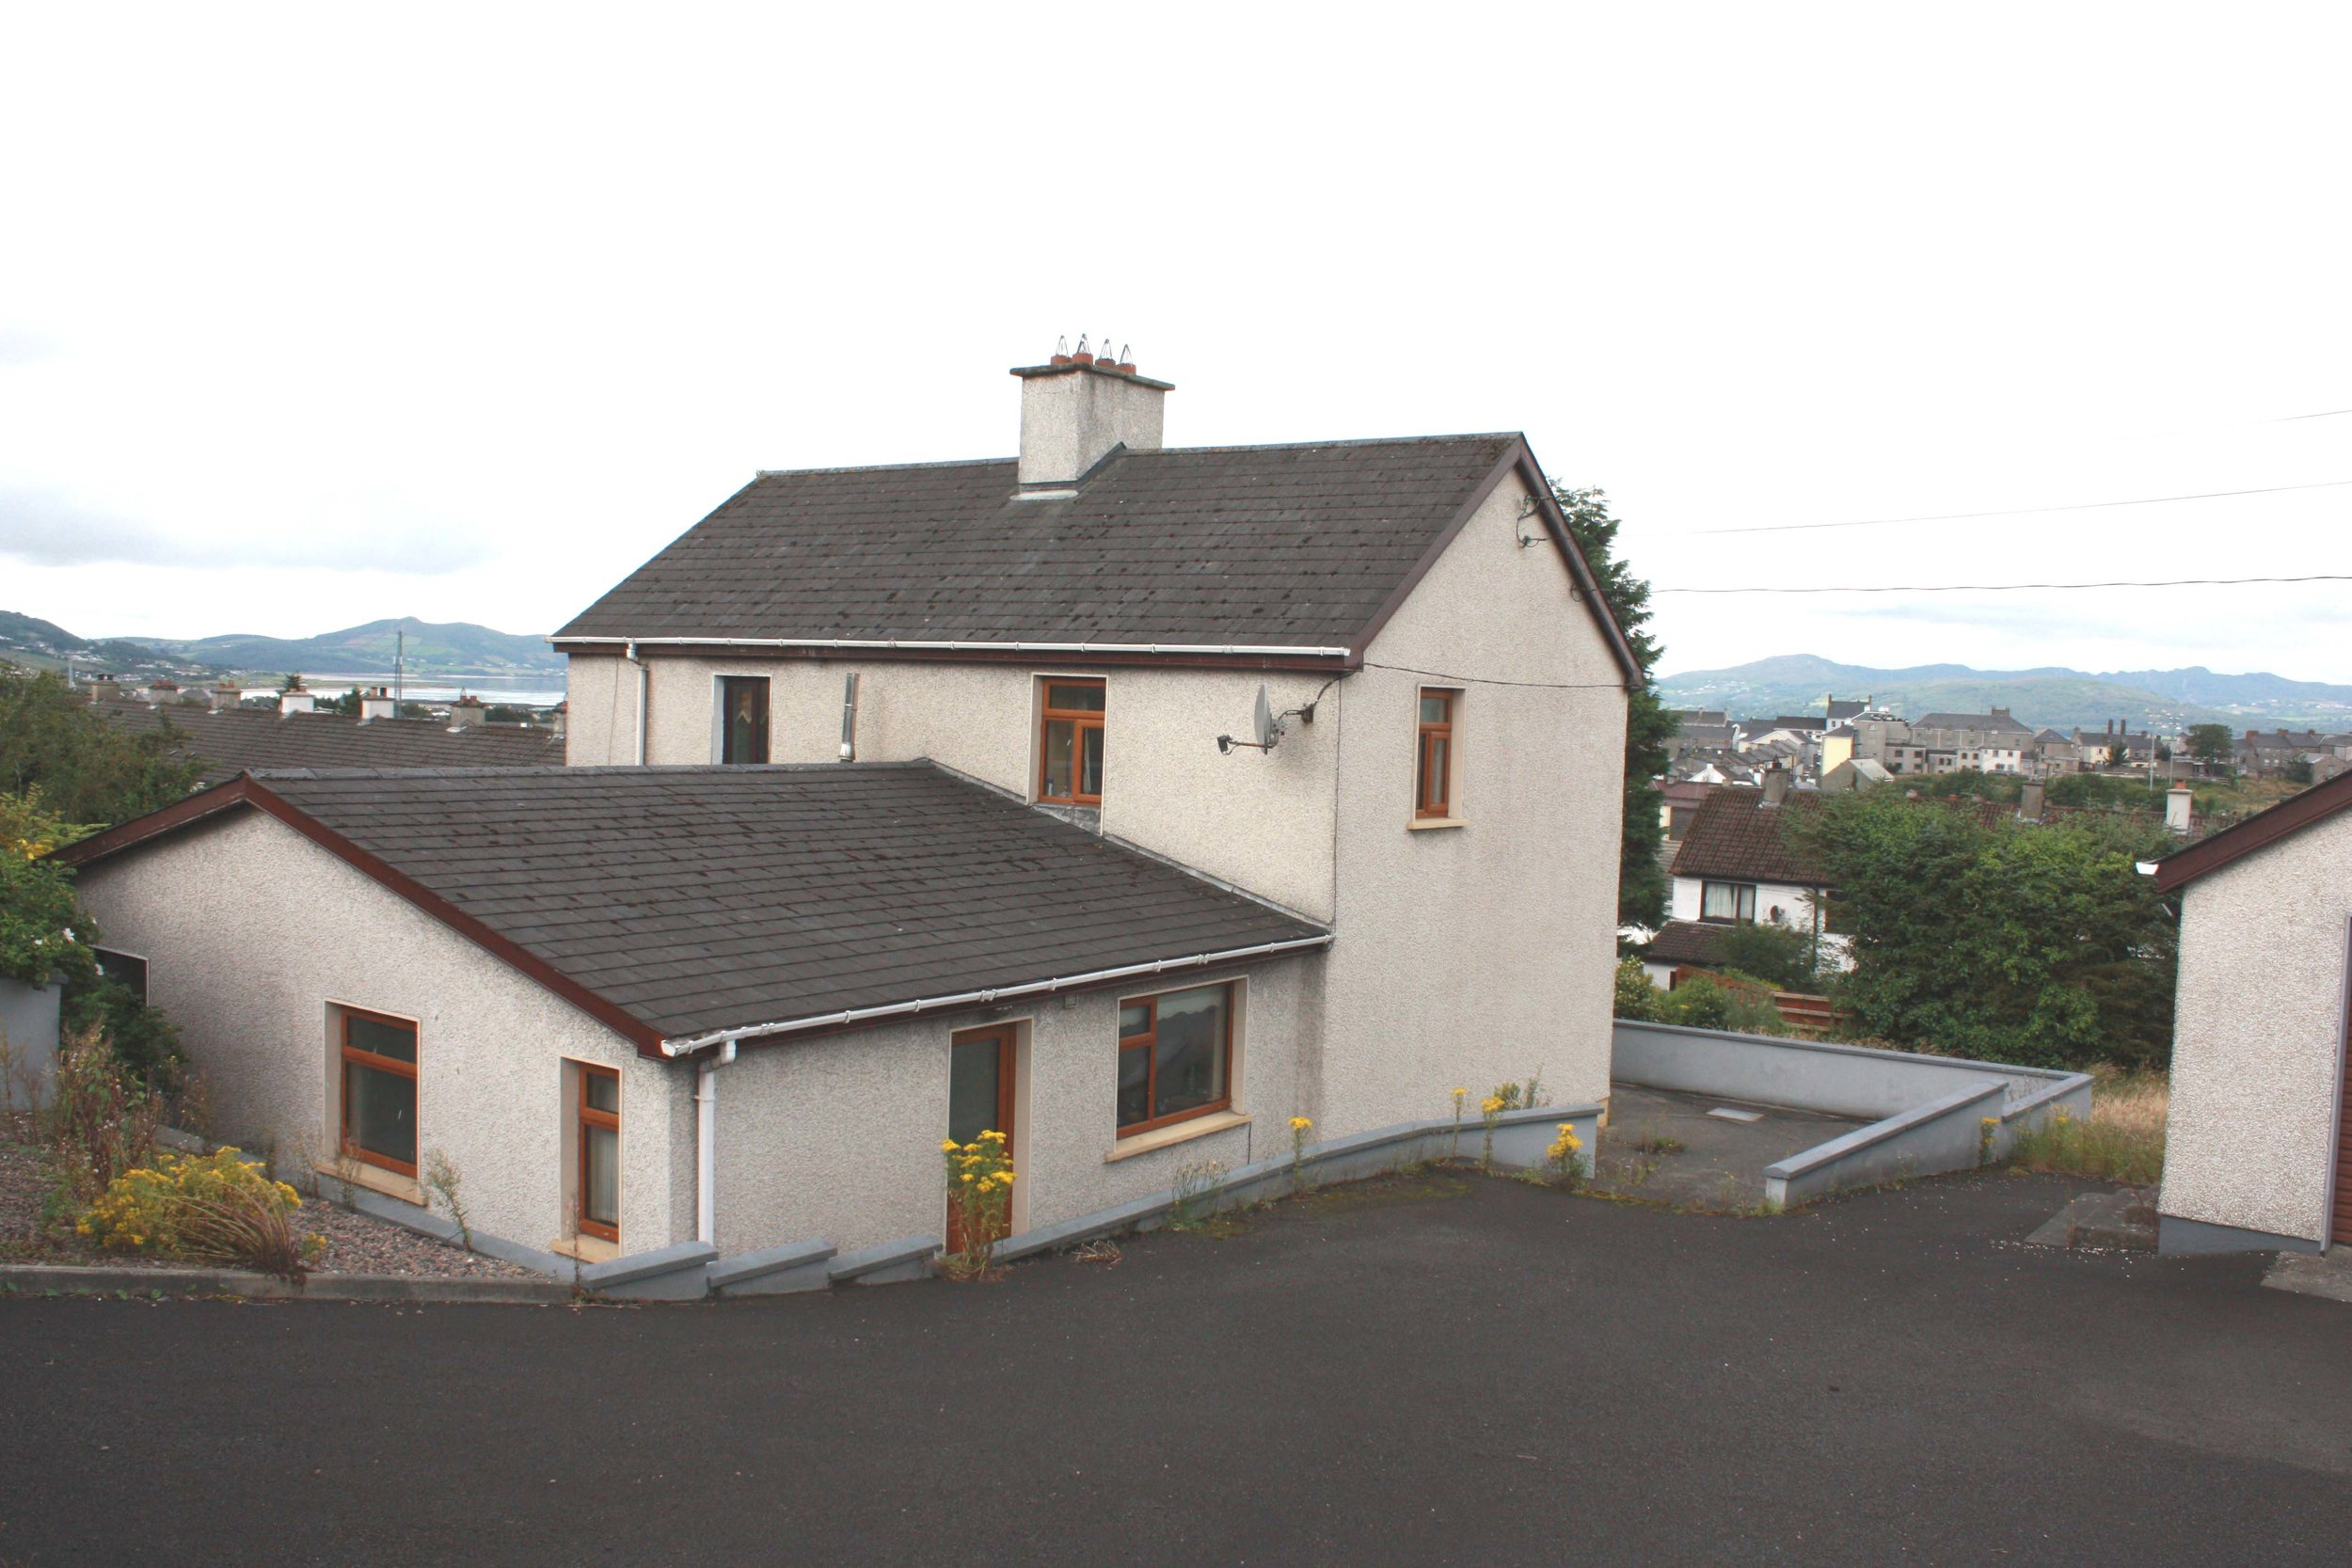 Hotels in Buncrana. Book your hotel now! - confx.co.uk